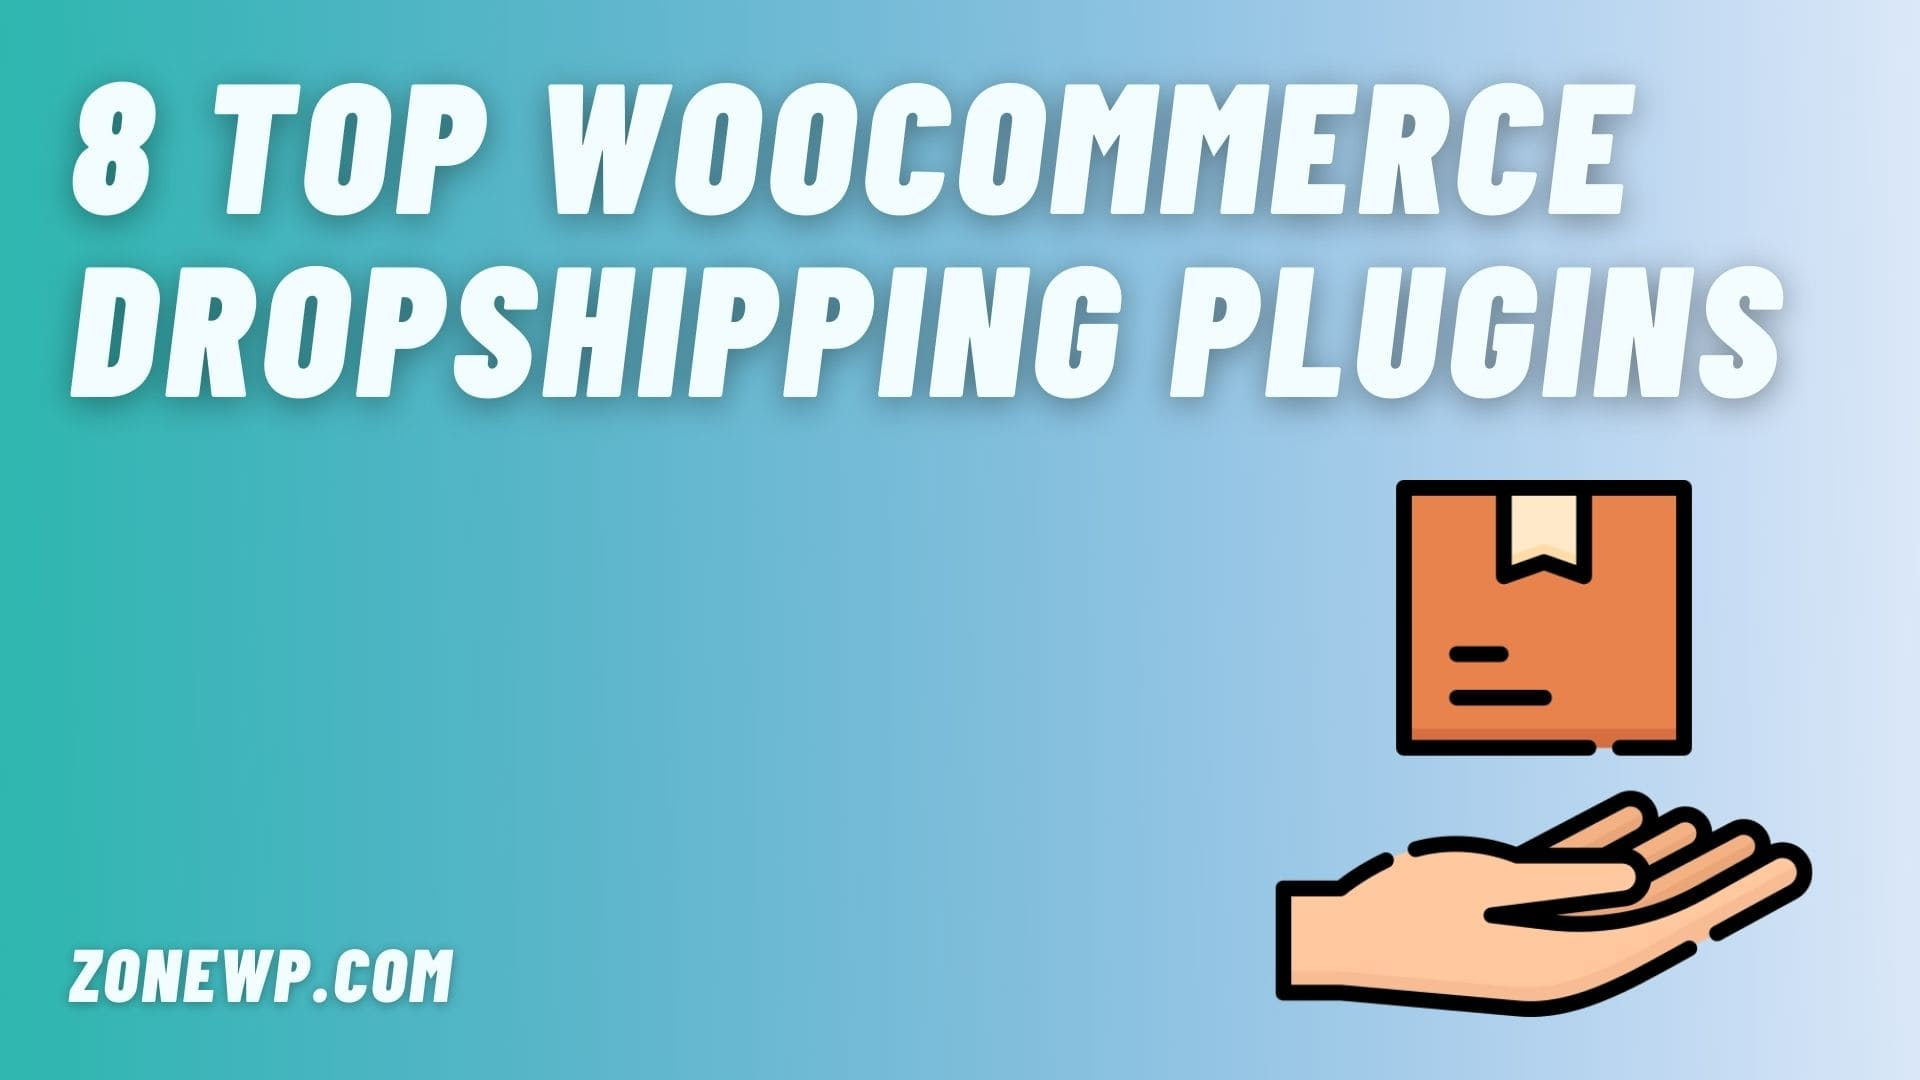 8 Top WooCommerce Dropshipping Plugins